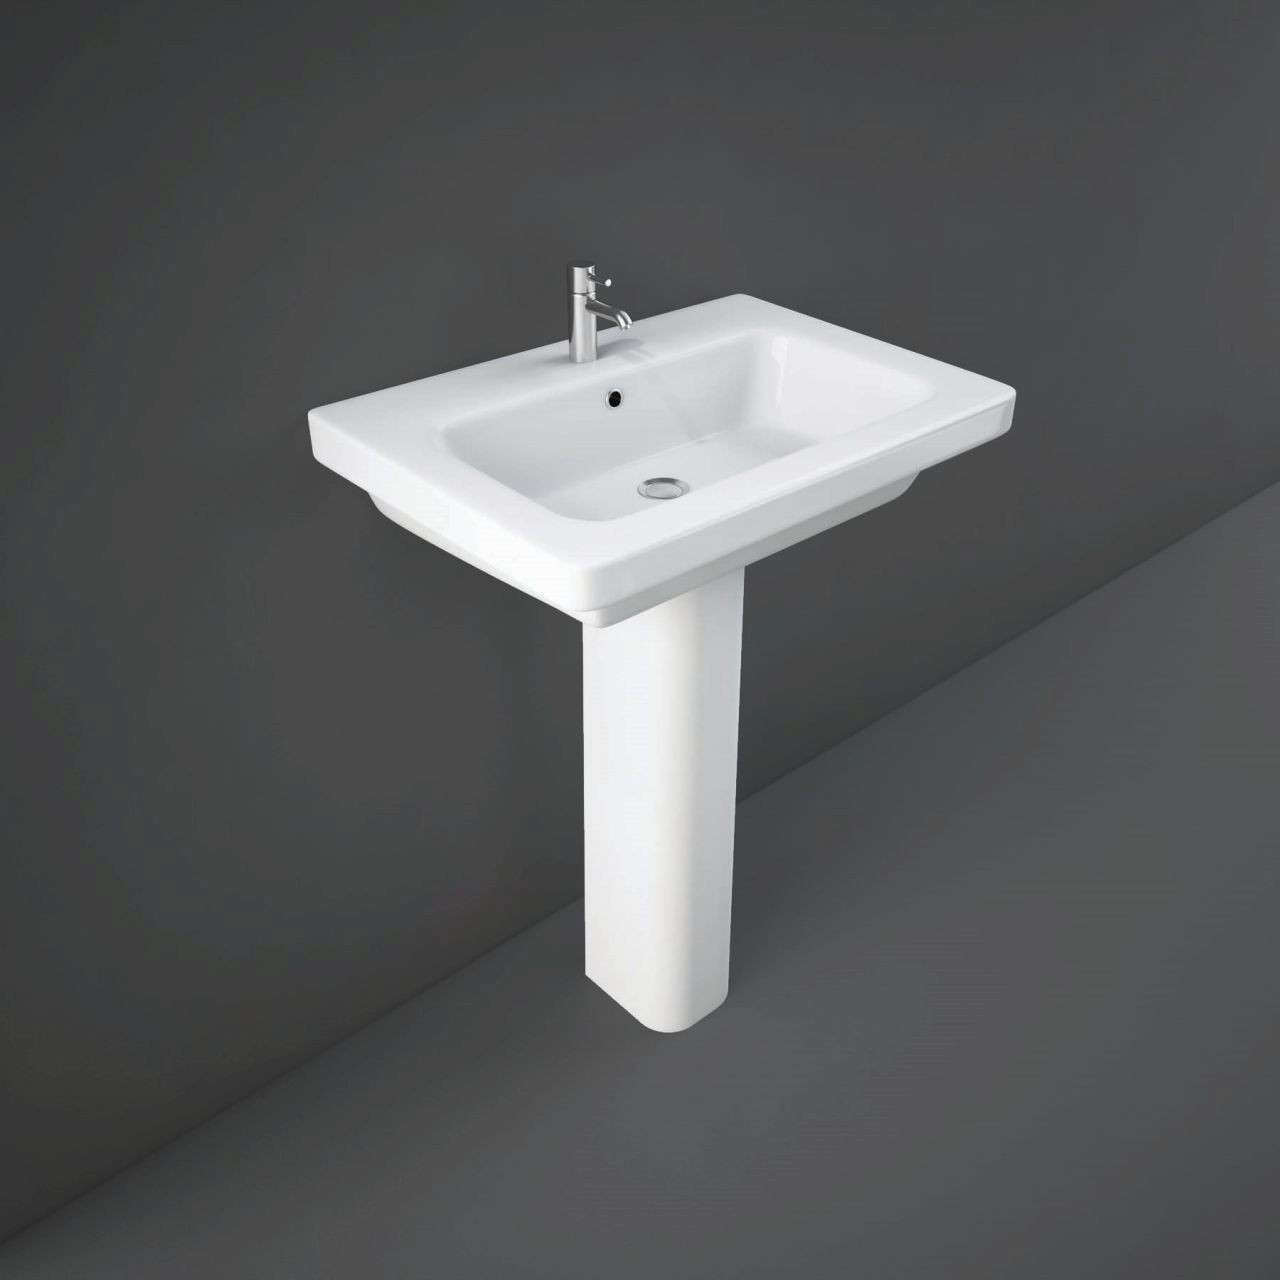 RAK Resort 650mm Basin with 1 Tap Hole and Extended Pedestal